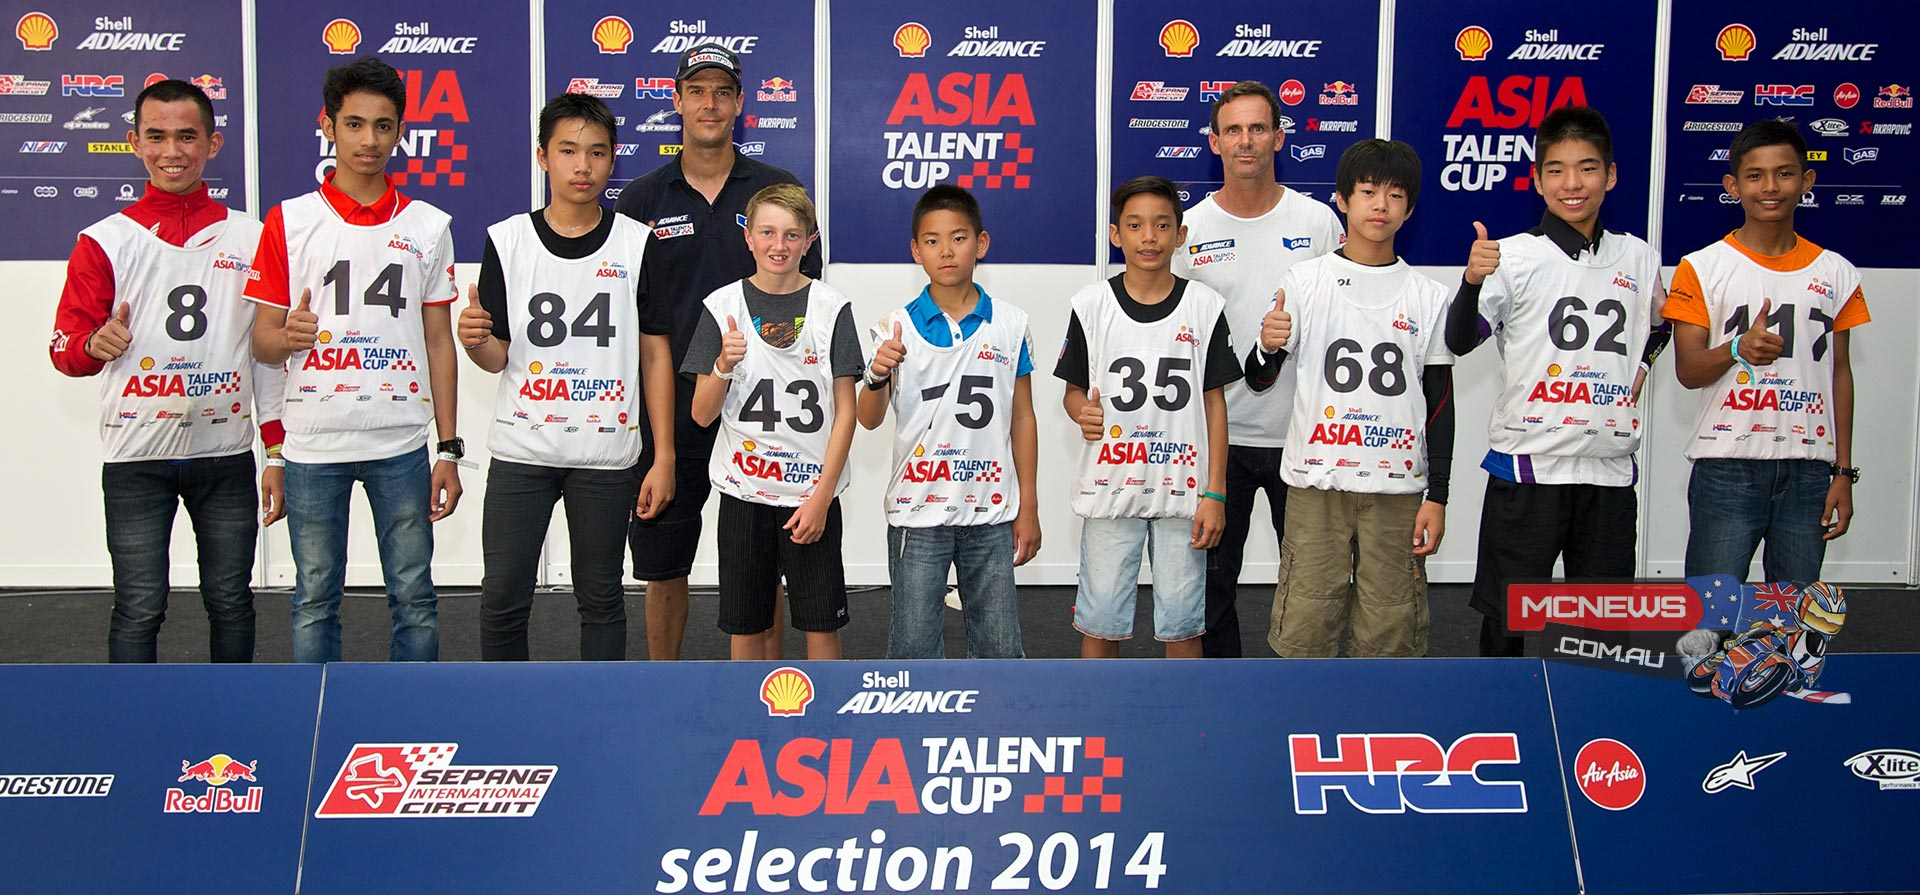 Photo from Asia Talent Cup Selections Event